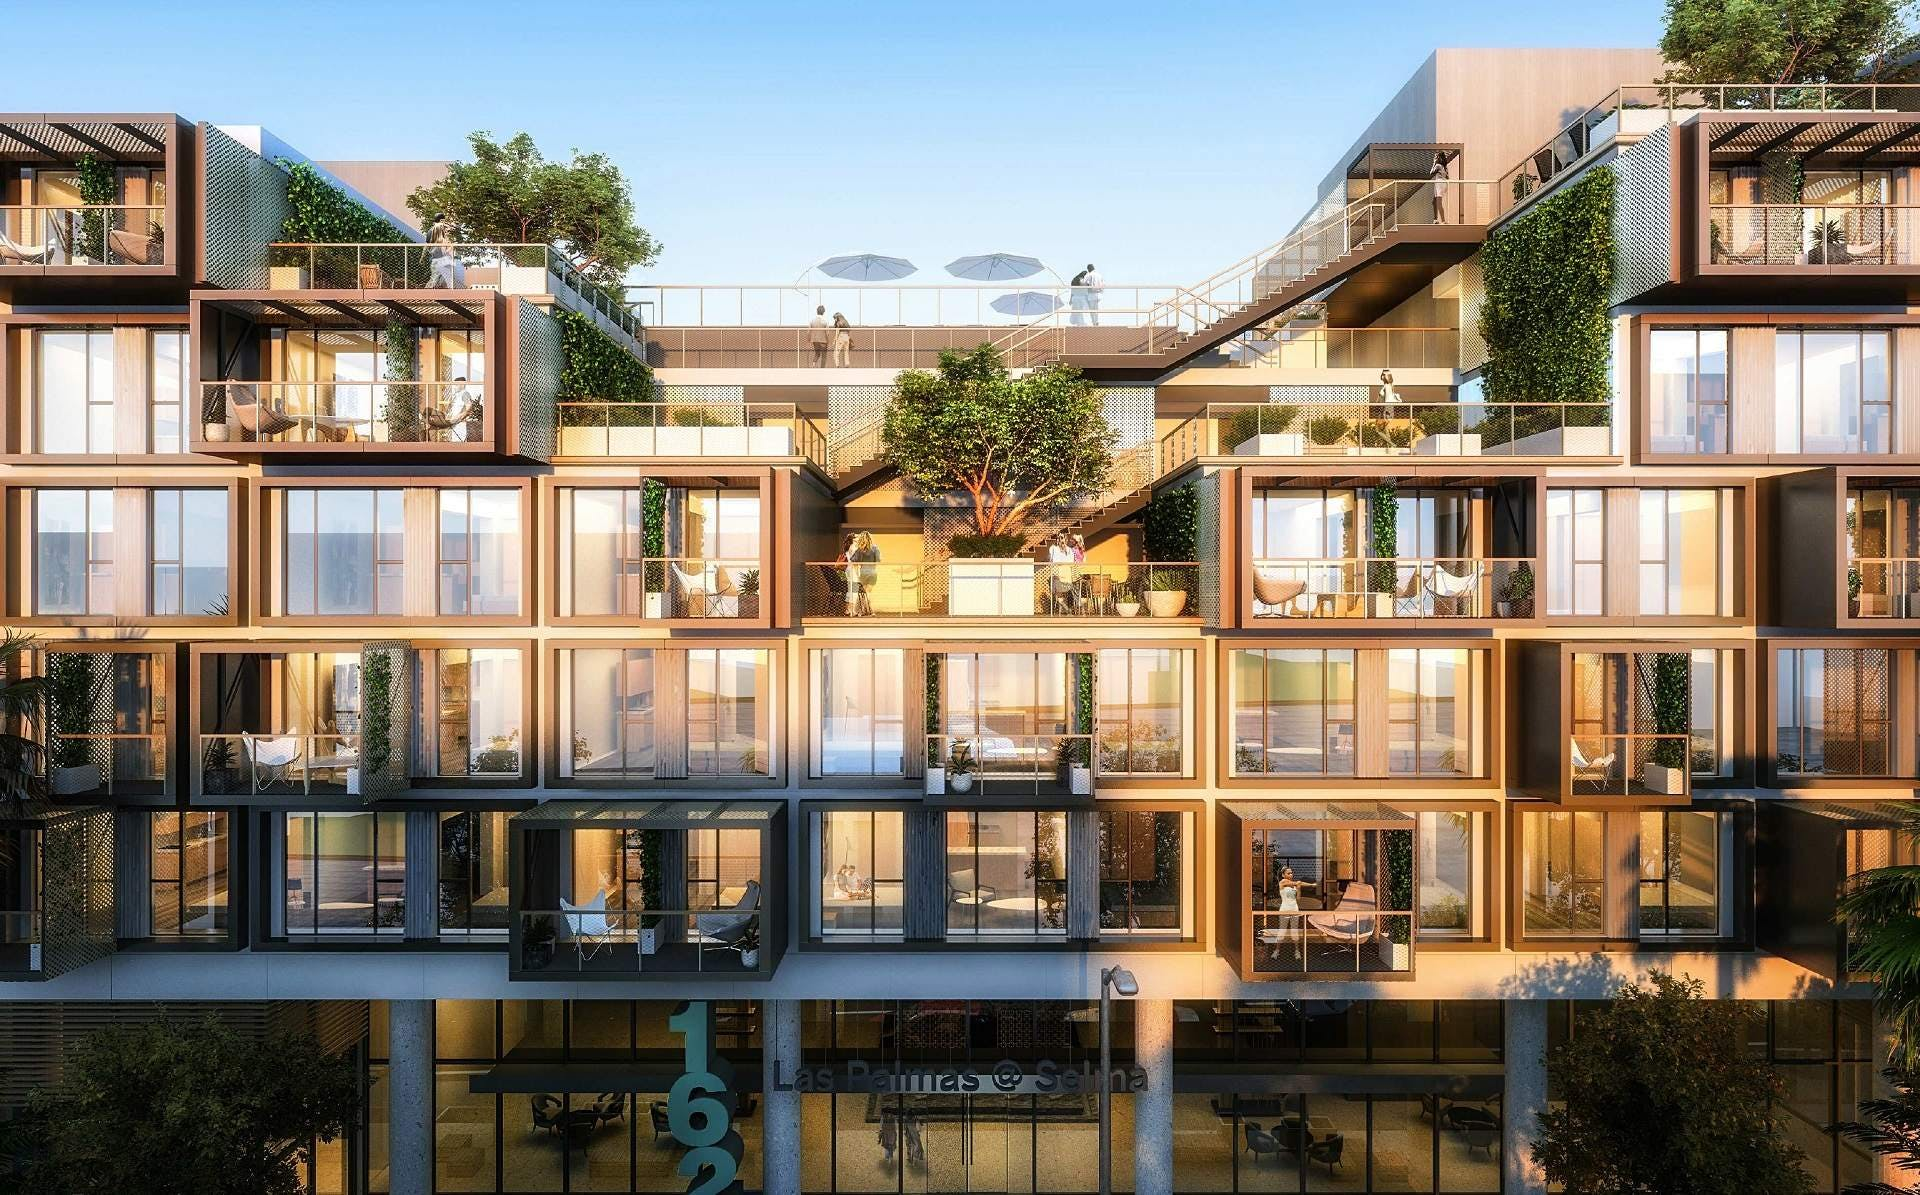 L.A. architects are embracing modular multi-family housing ...